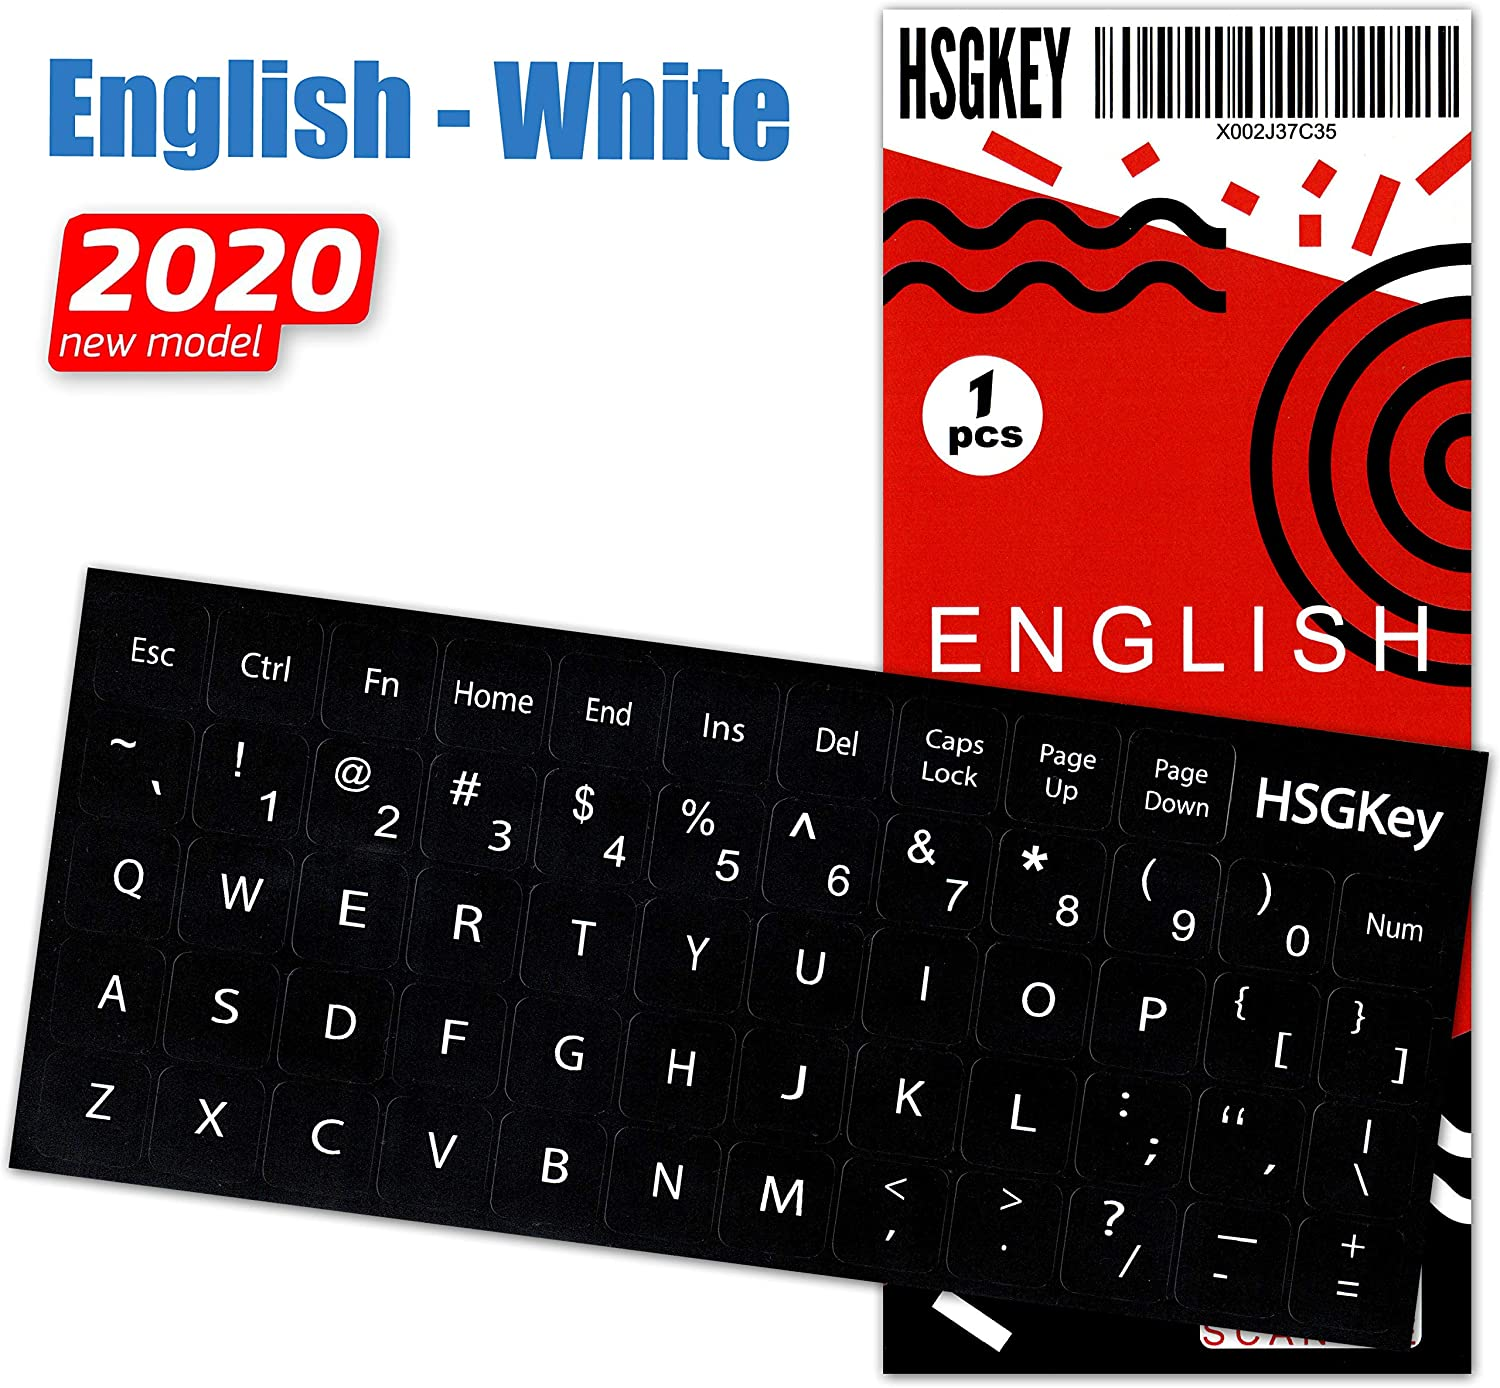 English Keyboard Stickers Replacement White Big Lettering Black Background for MacBook Air Pro Computer Laptop Desktop PC Mac English Ergonomic, Unit Size: 0.47x0.47 (Matte)